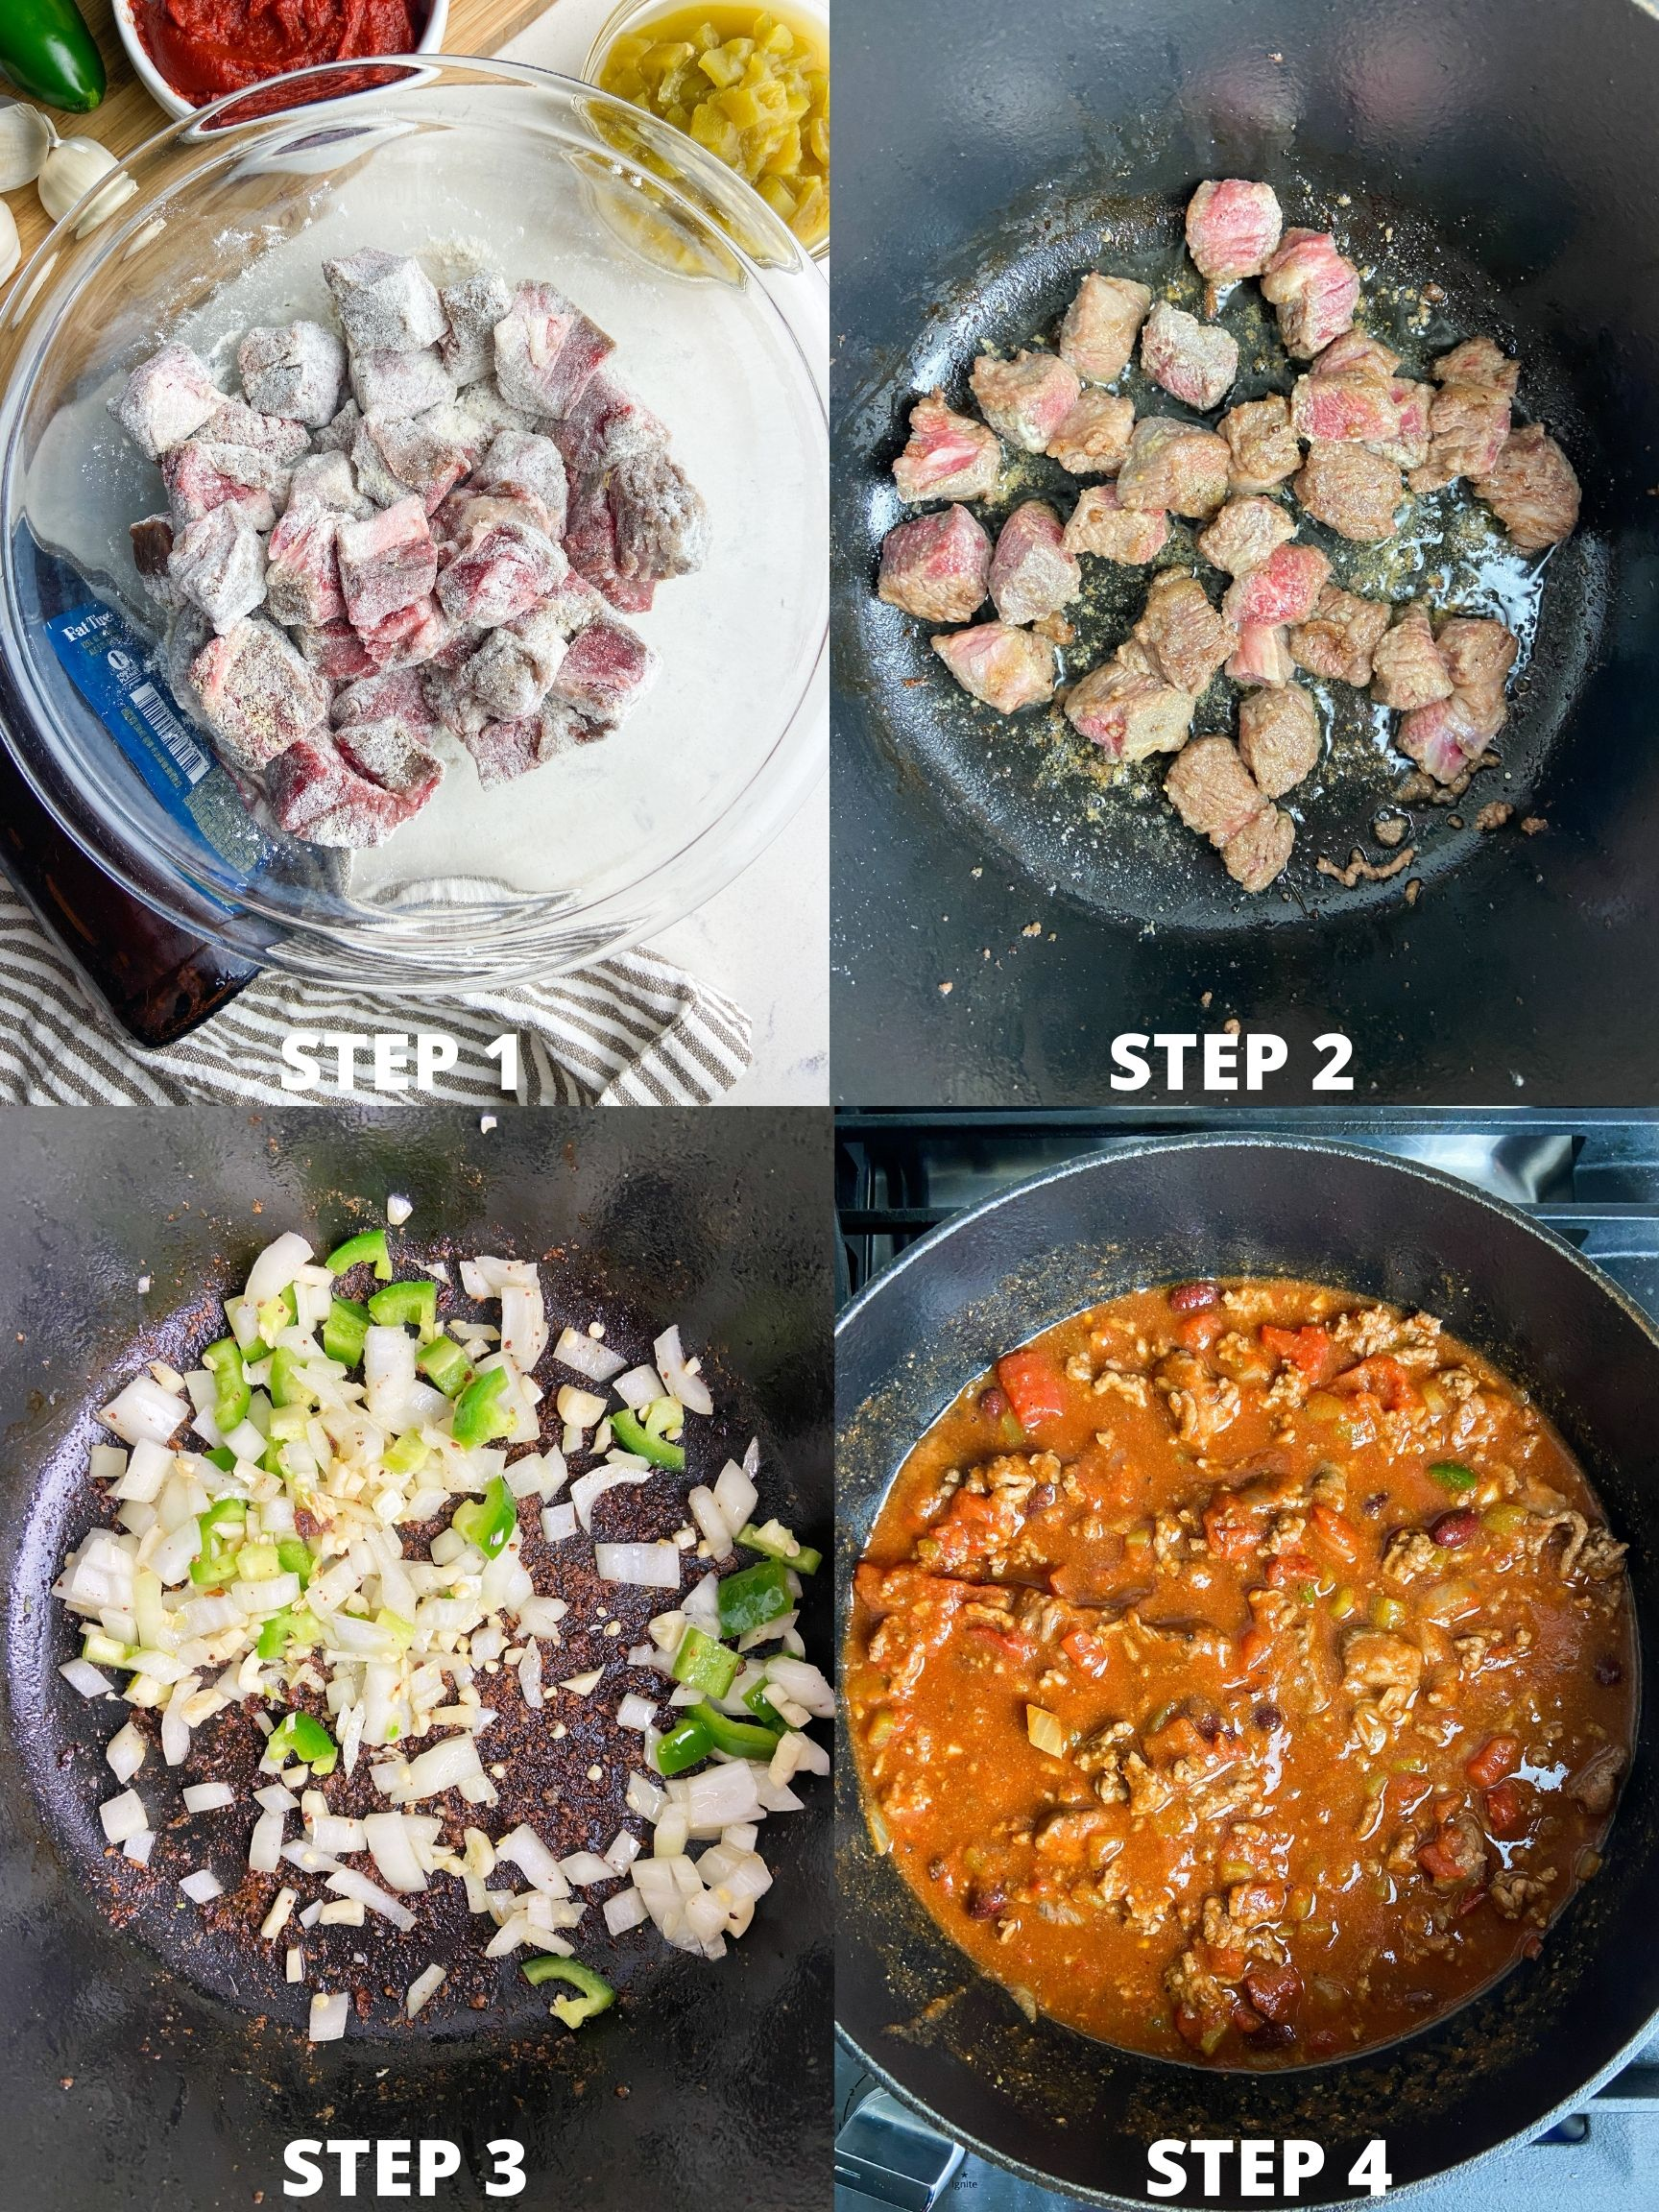 Step by step photos showing how to make beef chili